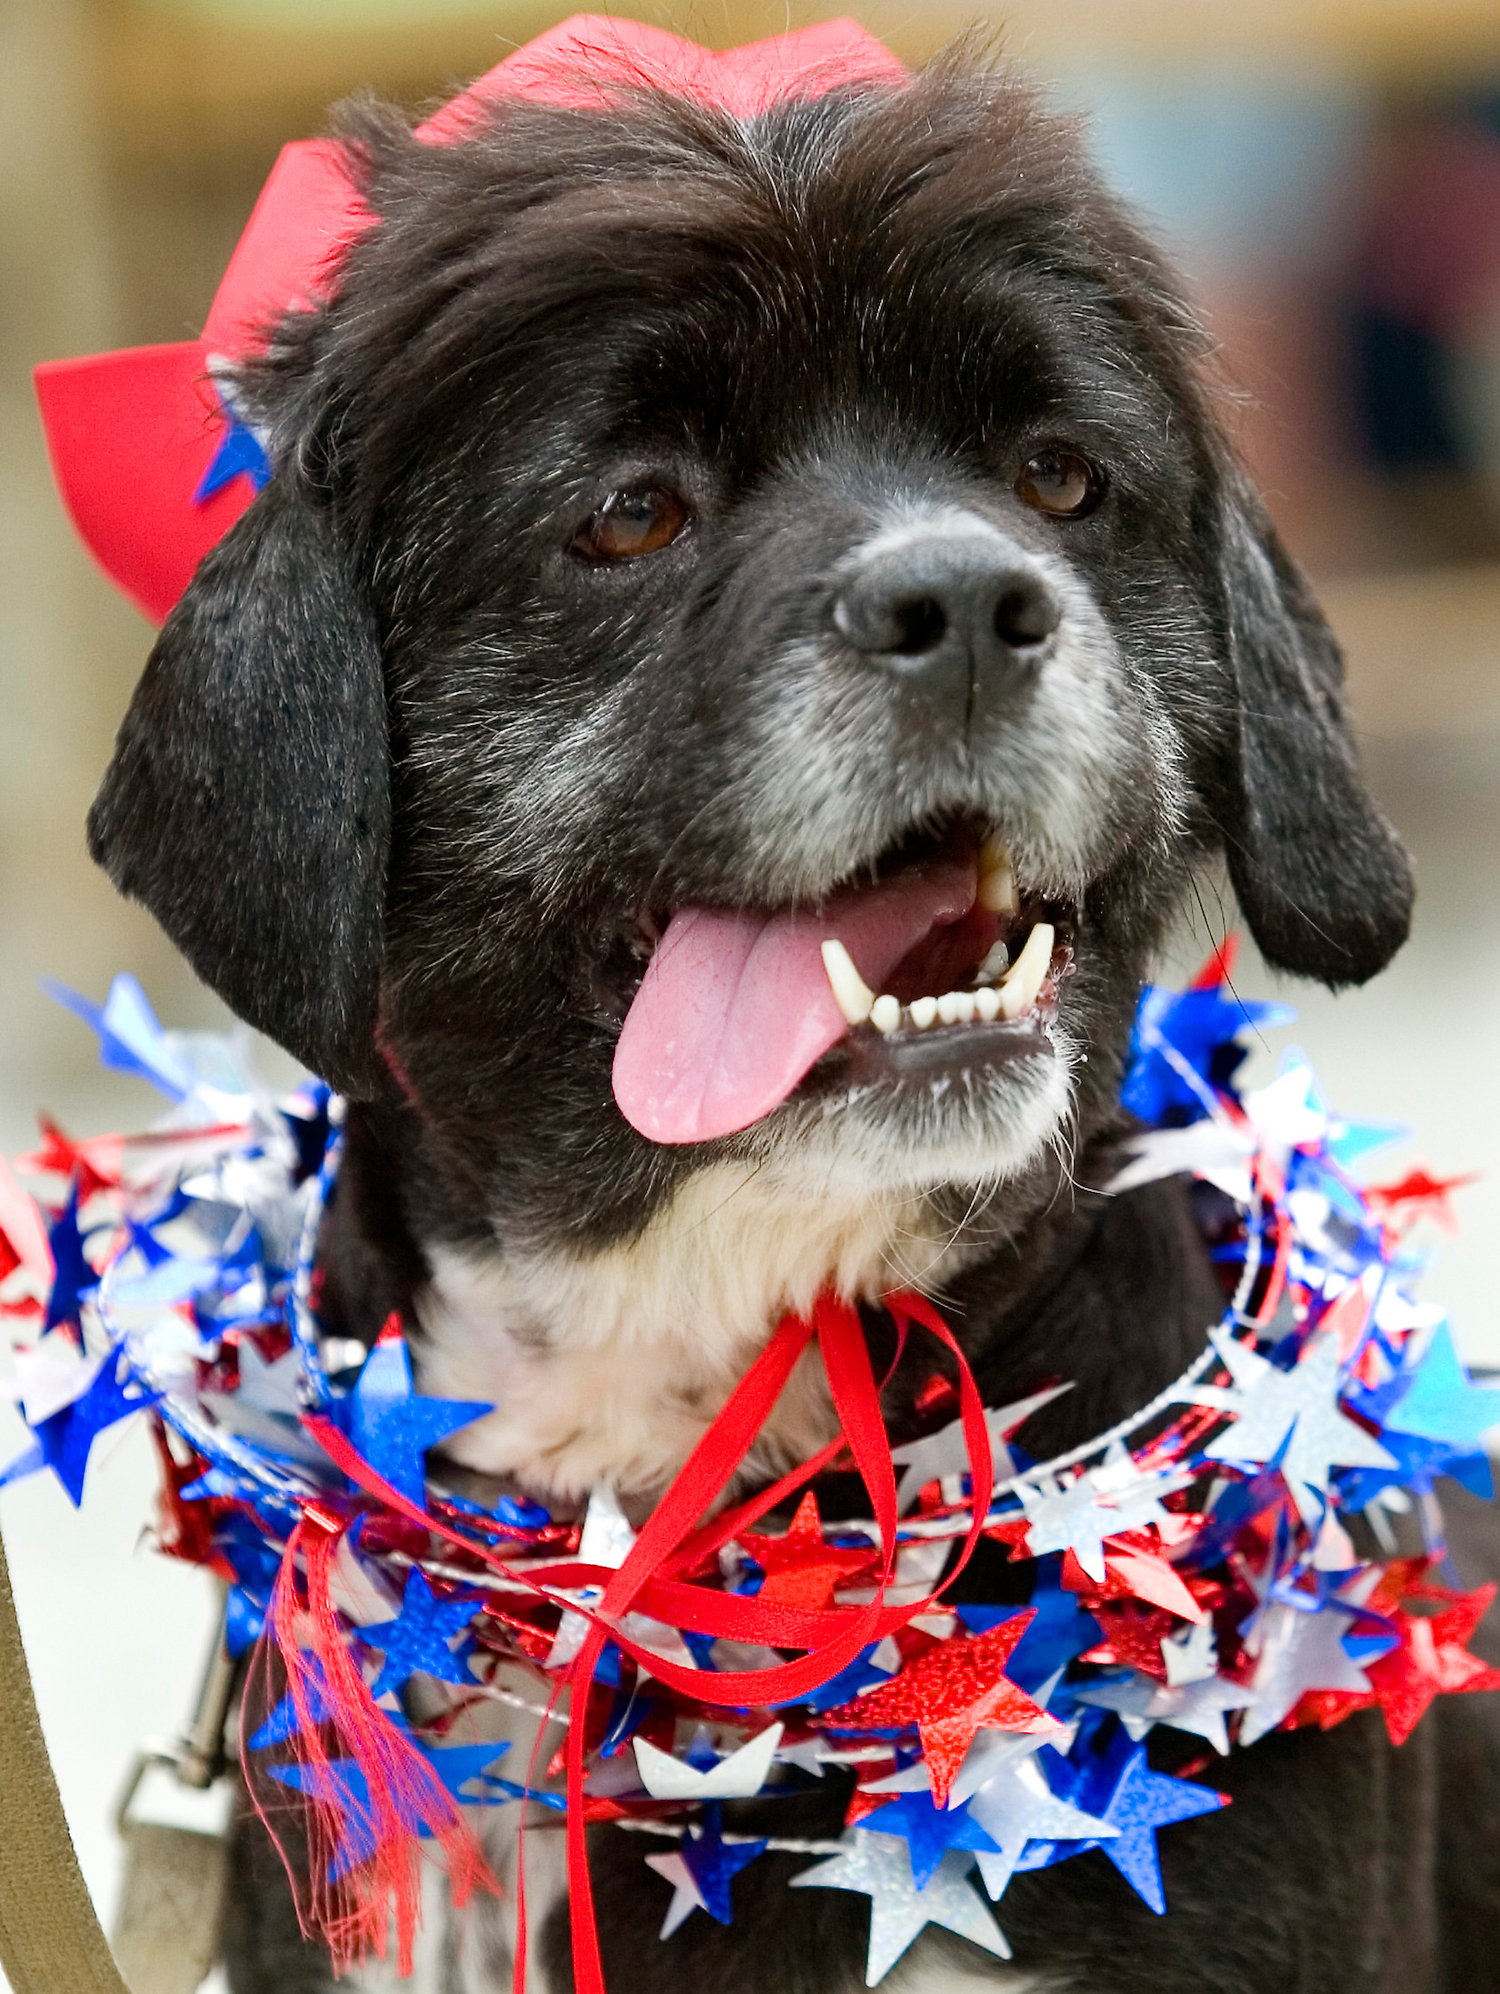 Bill waits to compete in the Mutt Strutt patriotic dog contest during an Independence Day celebration in Moscow, Idaho, on Friday, July 4, 2008.